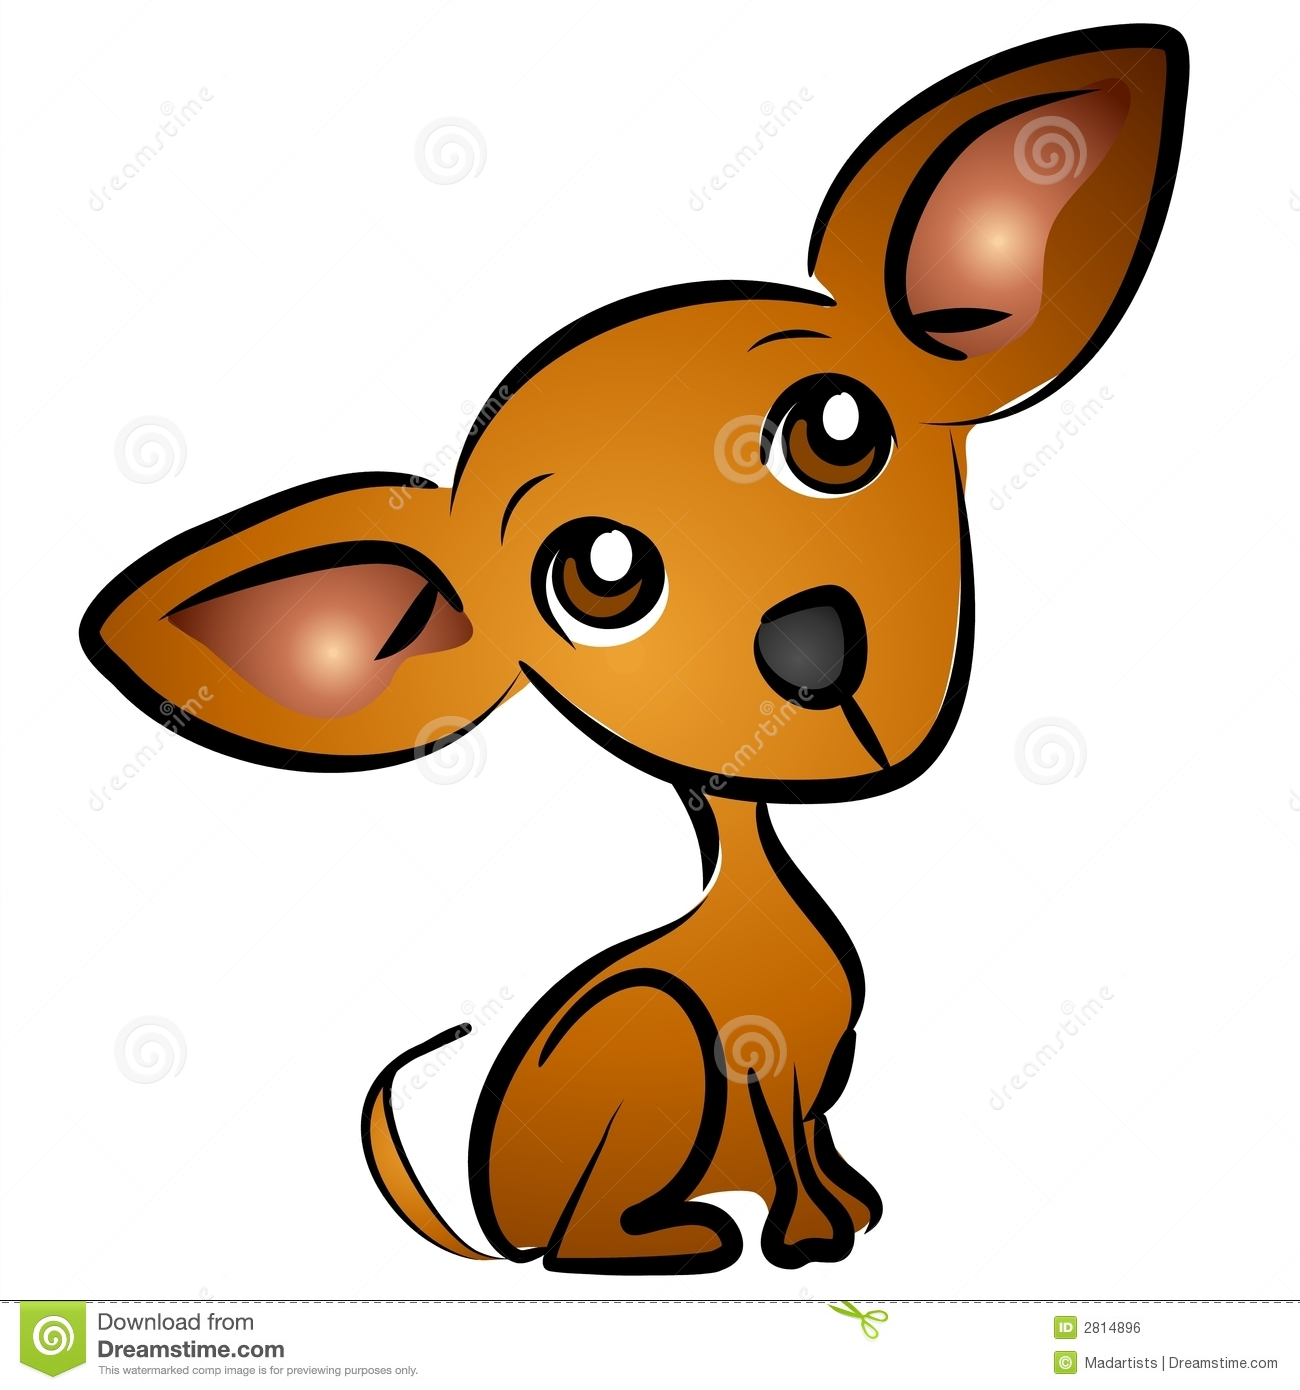 chihuahua dog clipart - photo #26